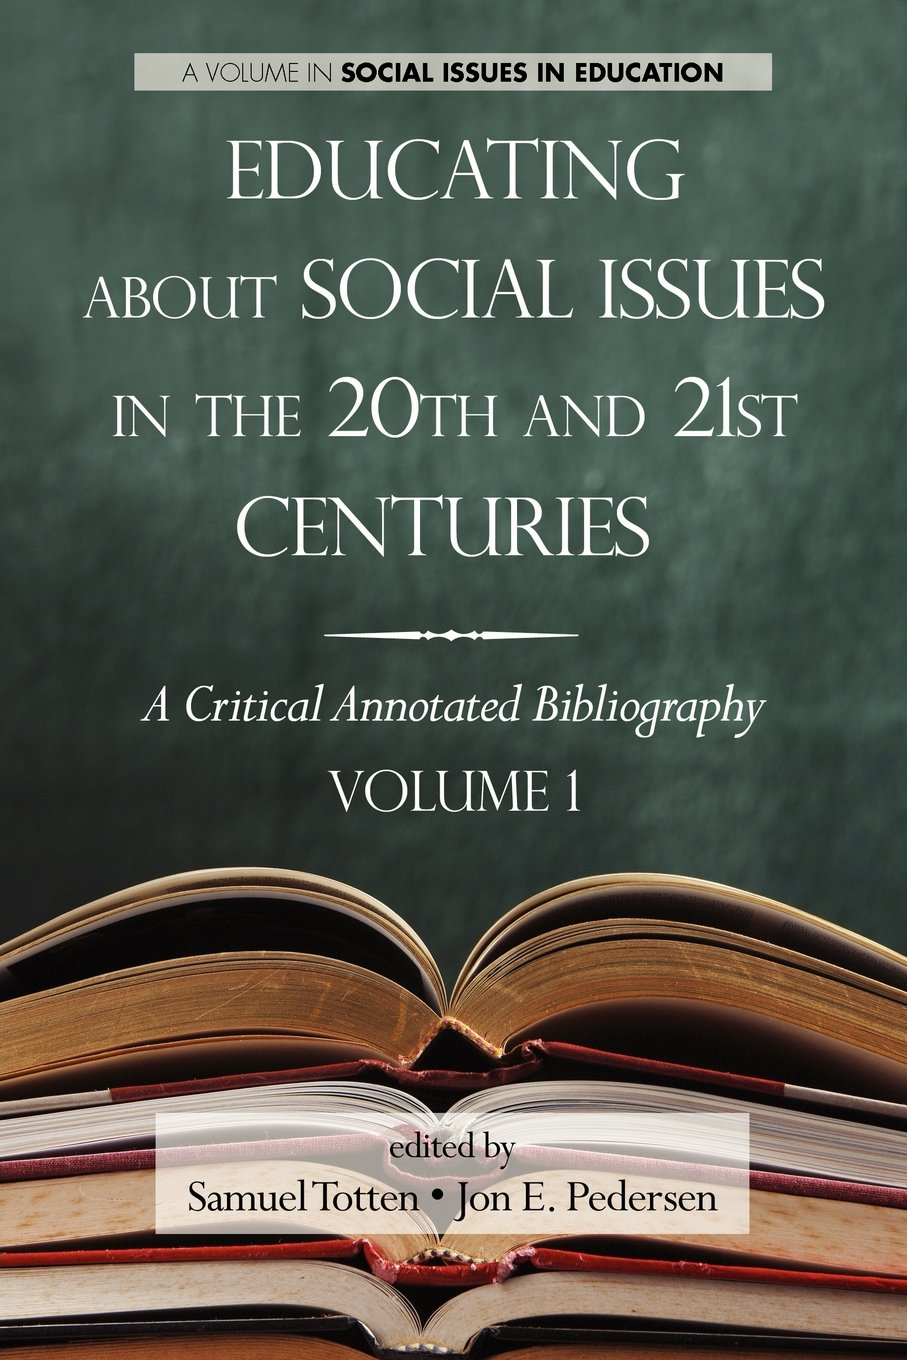 Educating about Social Issues in the 20th and 21st Centuries: A Critical Annotated Bibliography Volume One (Research in Curriculum and Instruction)